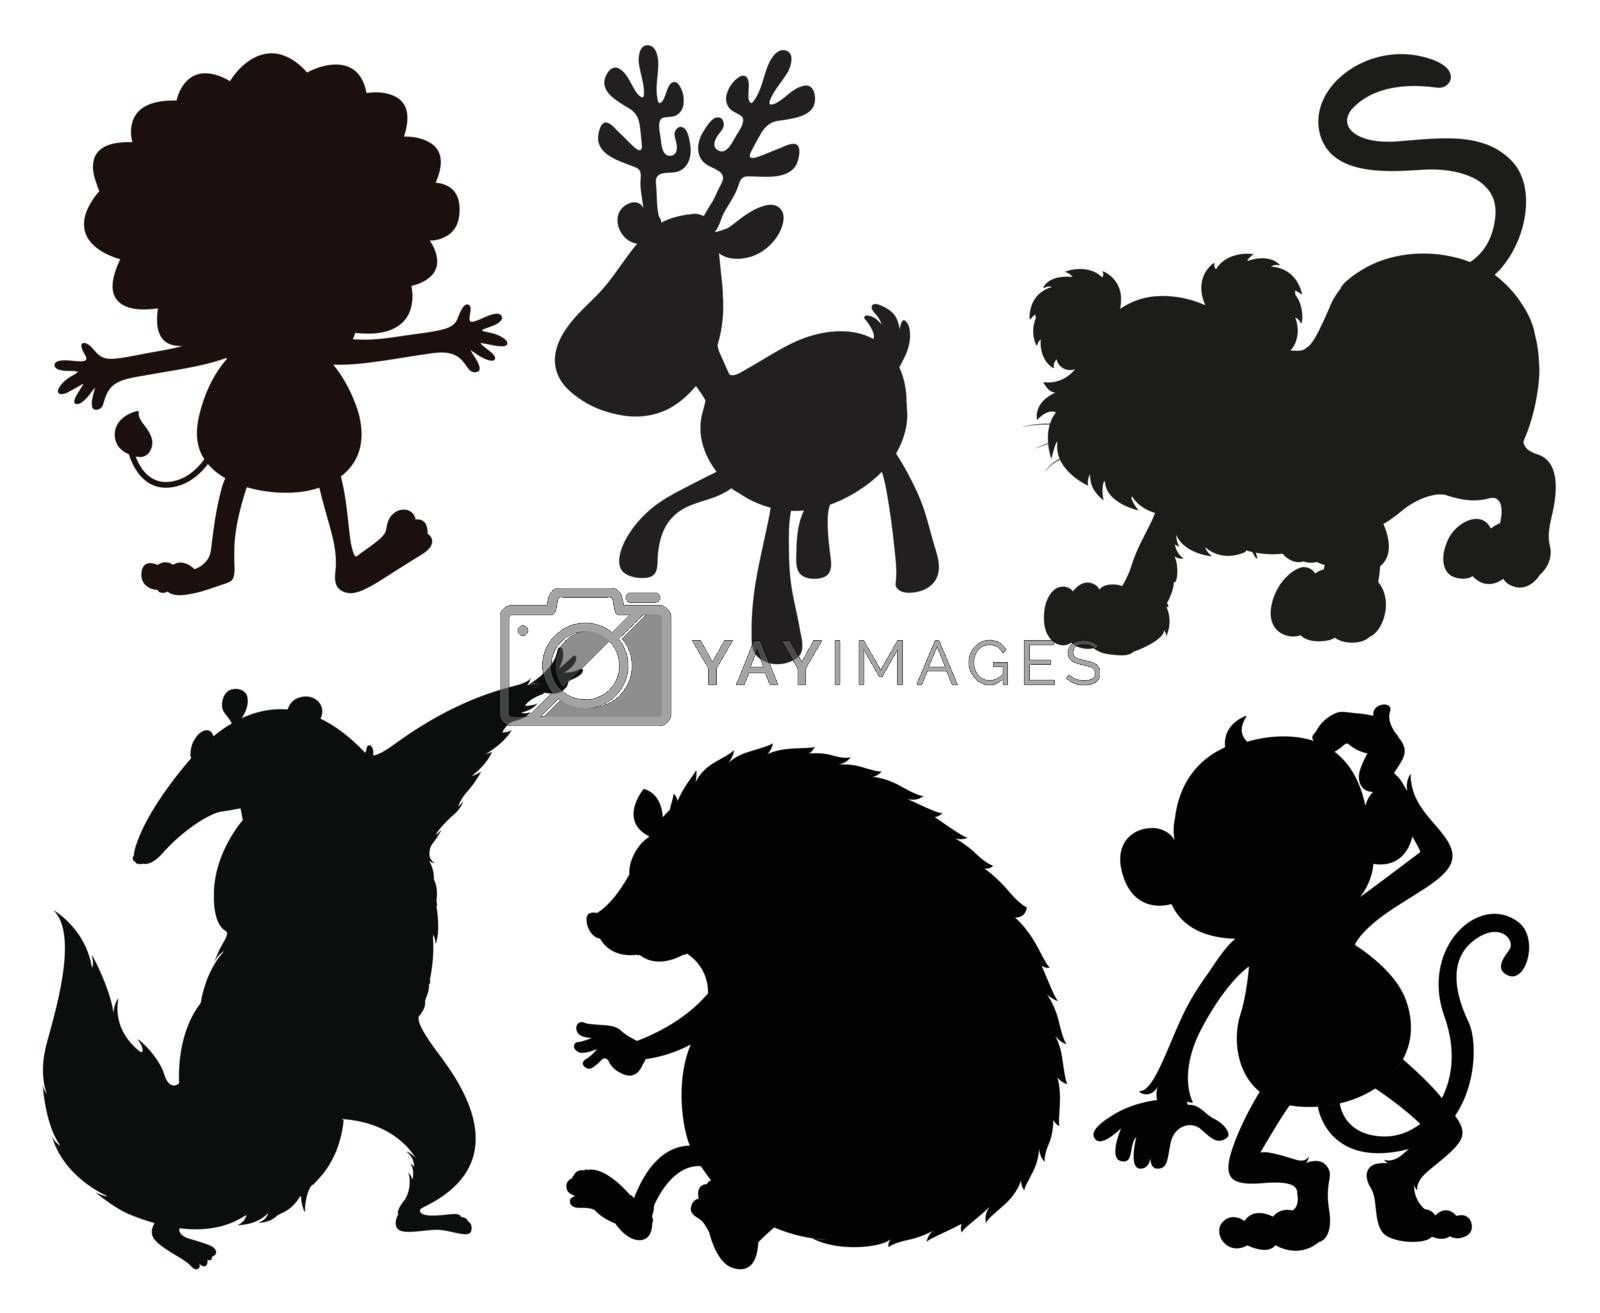 Silhouettes of animals by iimages